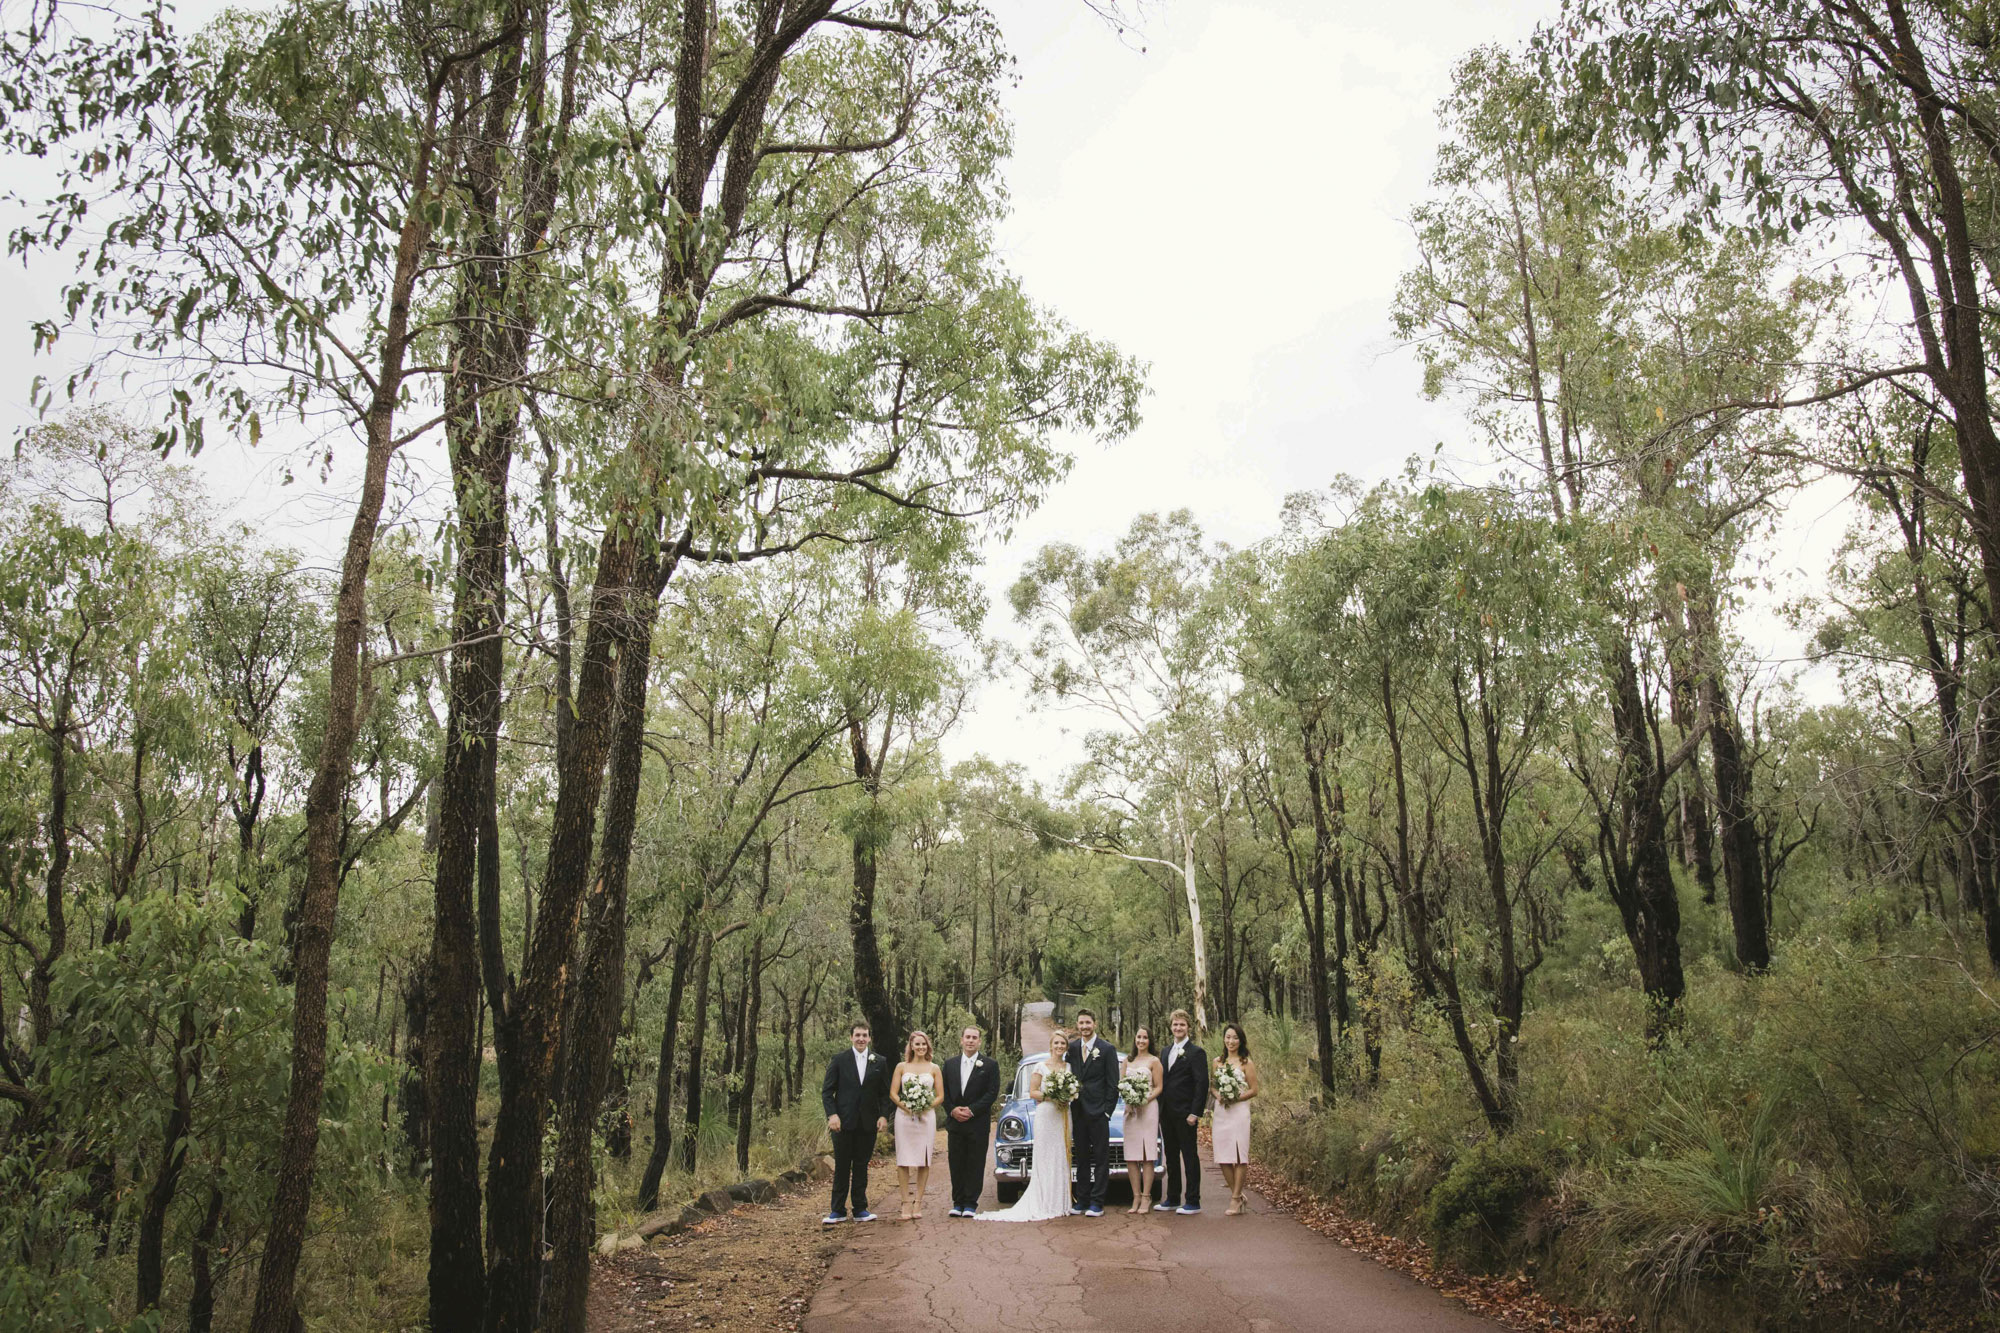 Angie-Roe-Photography-Wedding-Perth-Northam-Wheatbelt-Country-Rural (21).jpg